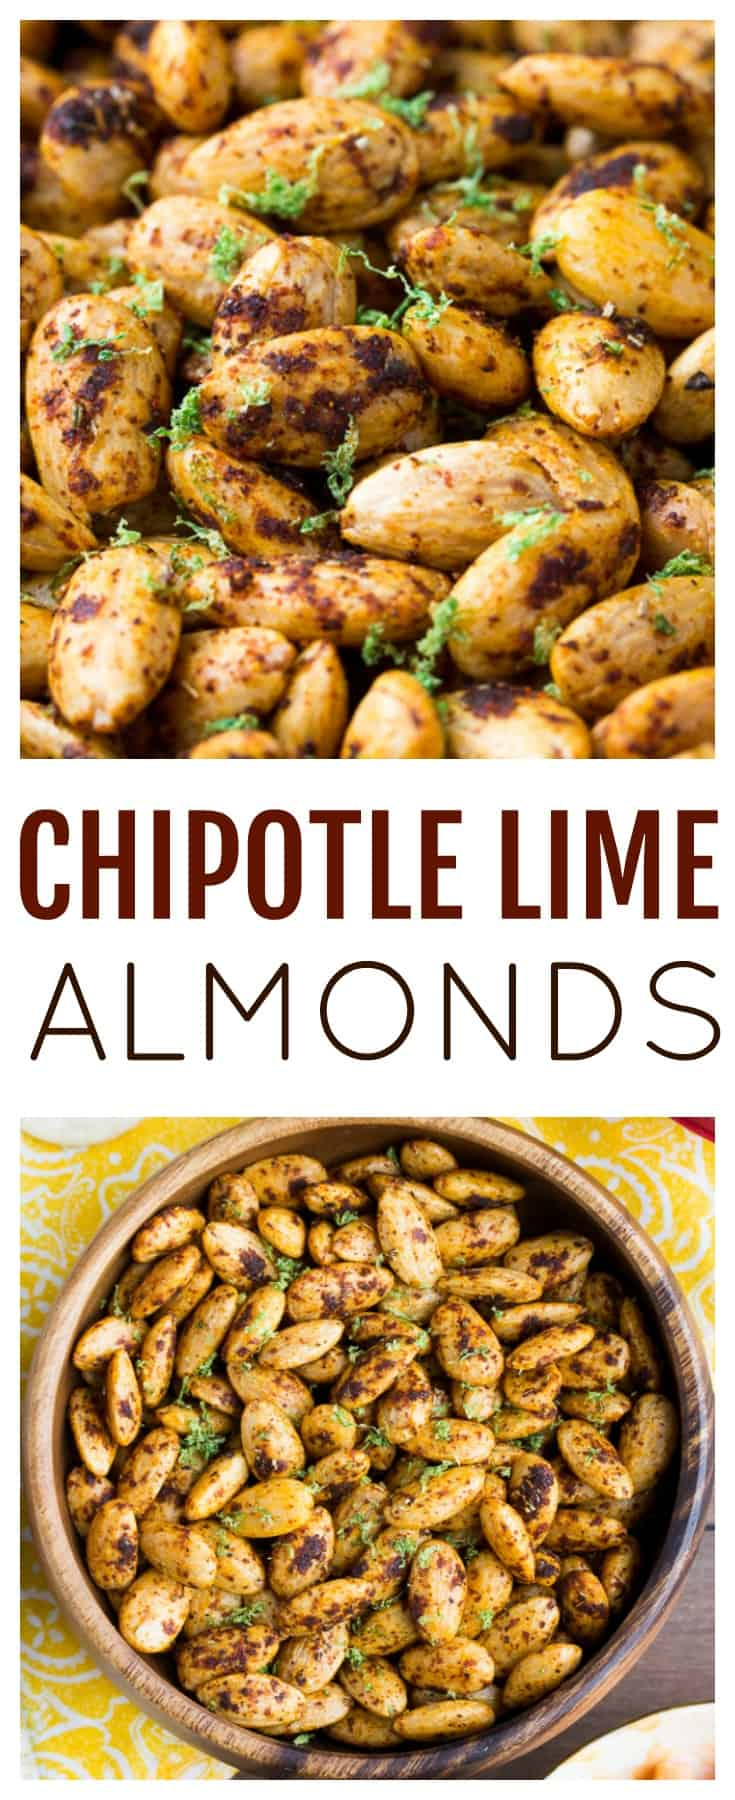 These Chipotle Lime Almonds are an easy way to spice up snack time! This easy recipe takes only a few minutes and is a great appetizer or snack for entertaining! | #ad #IC #UpgradeYourSummer #almonds #snack #appetizer